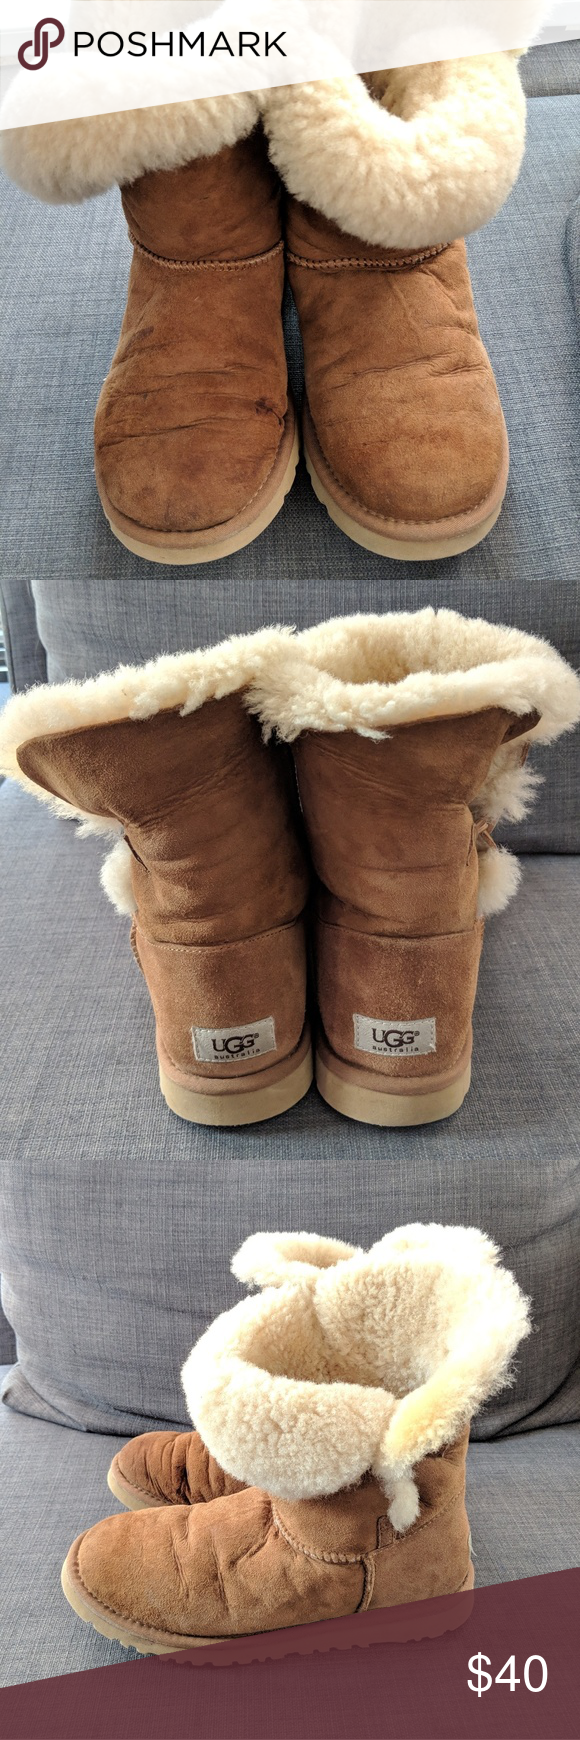 How To Get The Feet Smell Out Of Uggs